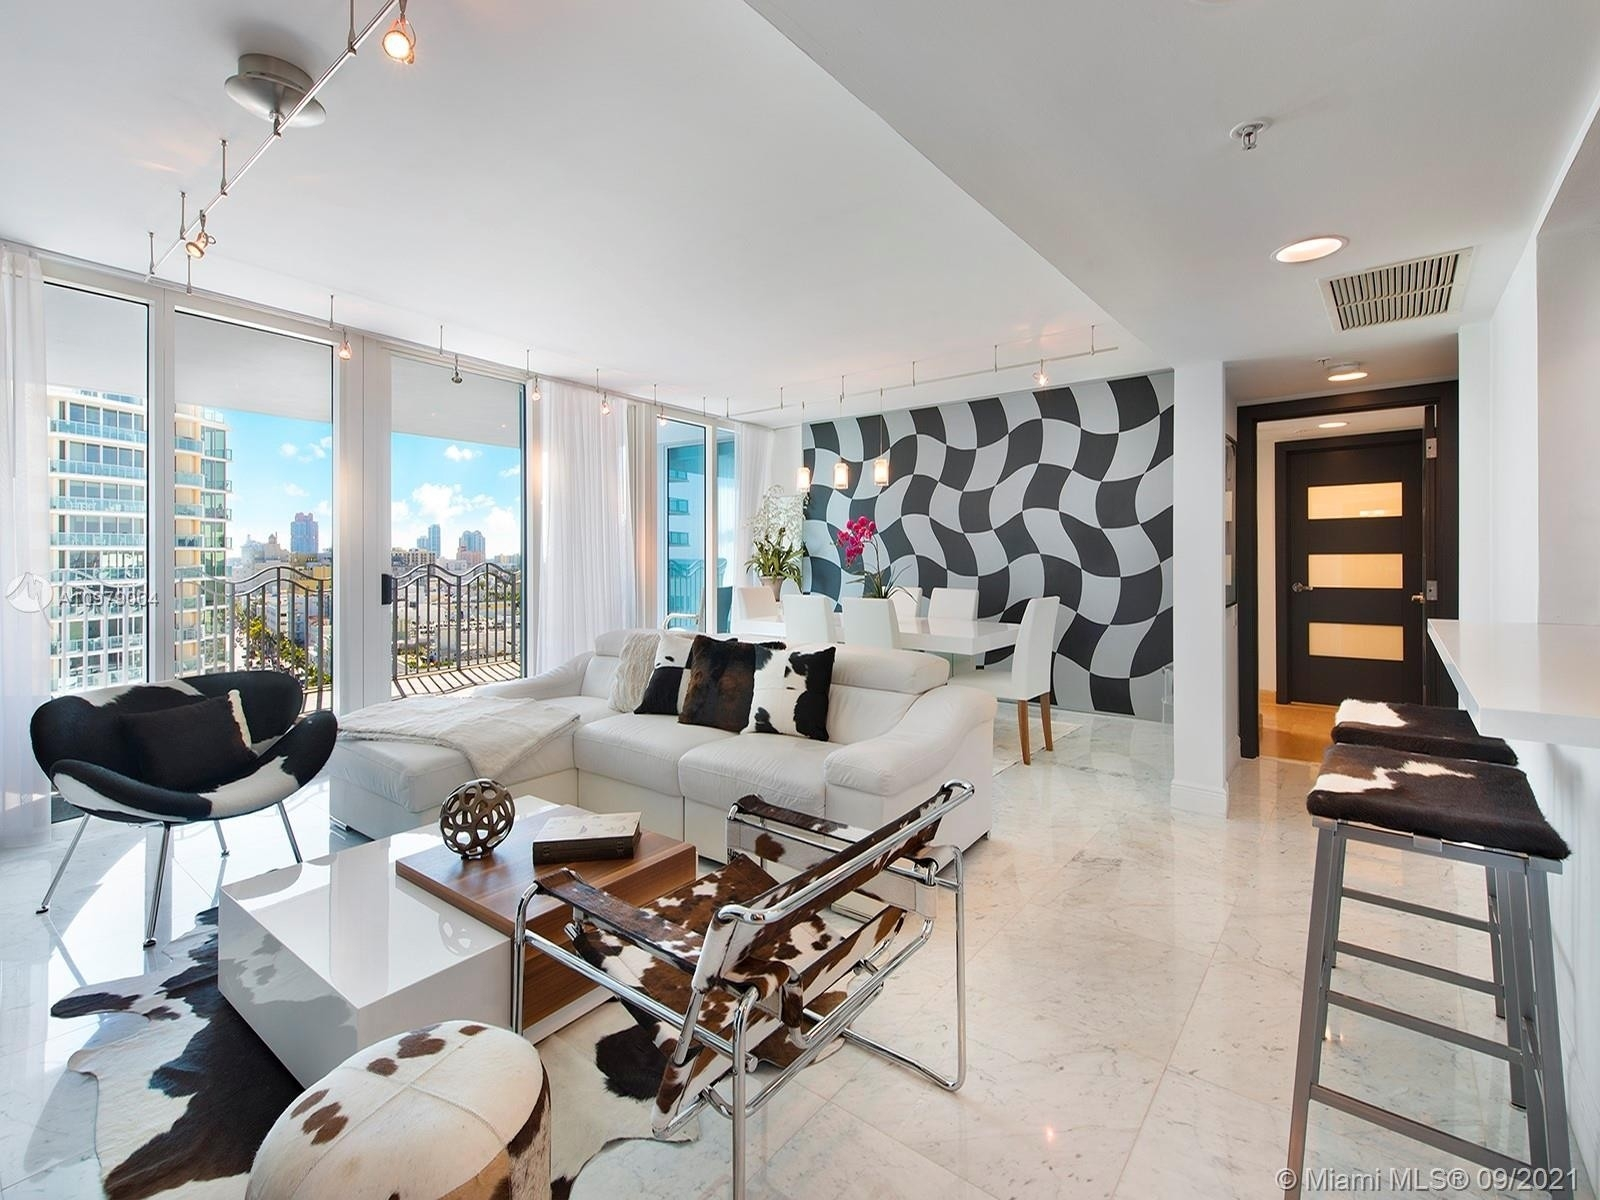 Property at 1500 Ocean Dr , 1106 Miami Beach City Center, Miami Beach, FL 33139